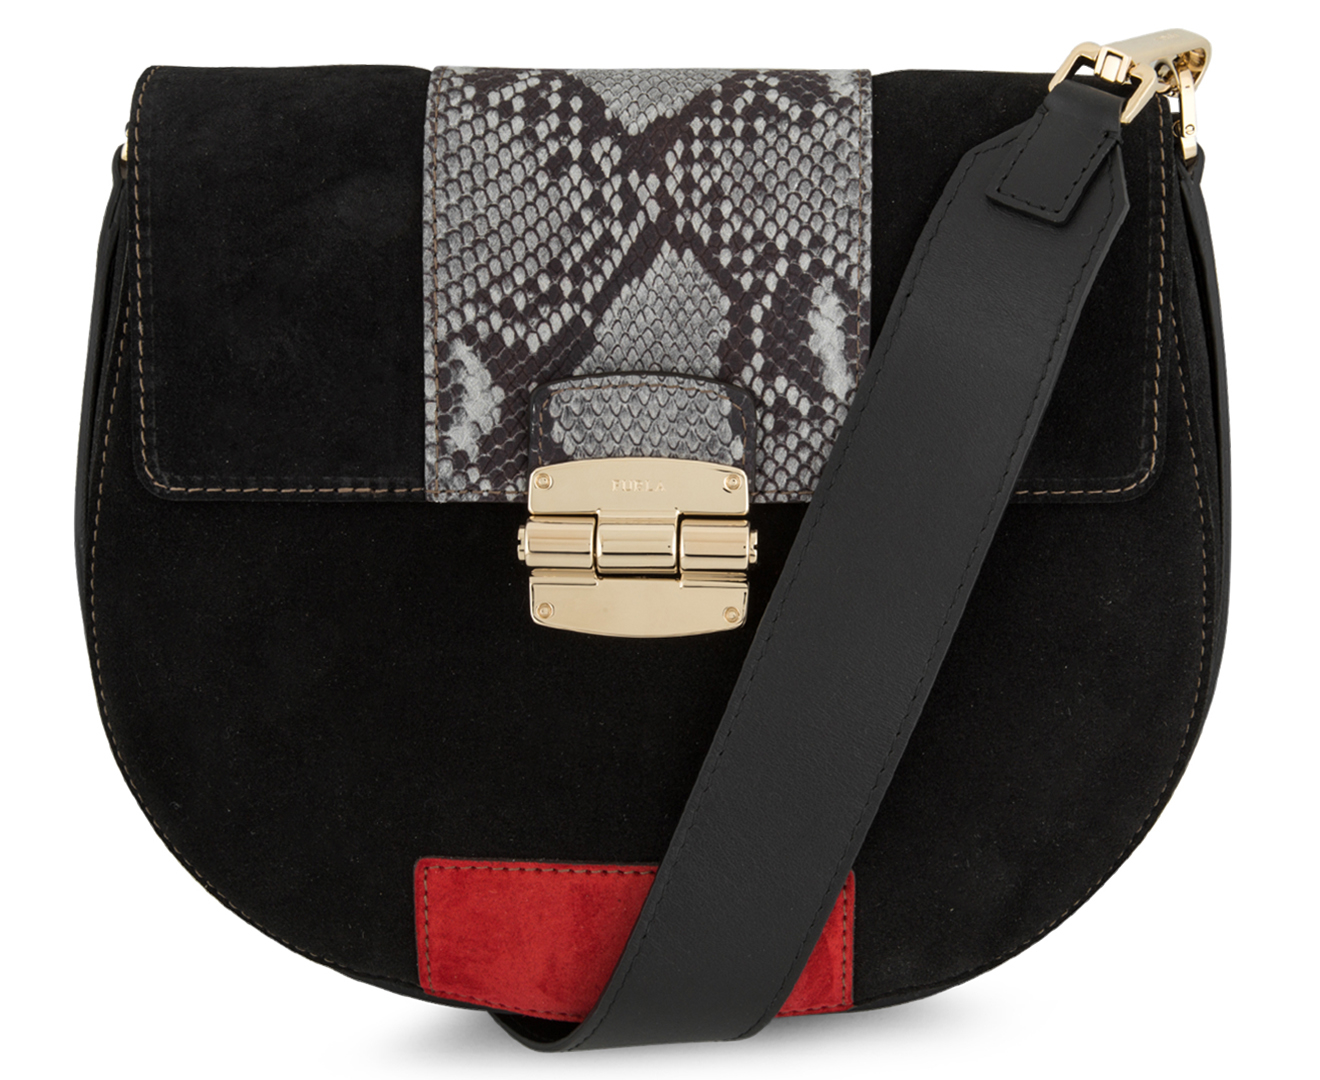 Furla Club Crossbody - Onyx Ruby Argilla   Catch.com.au cc2d4f2a07